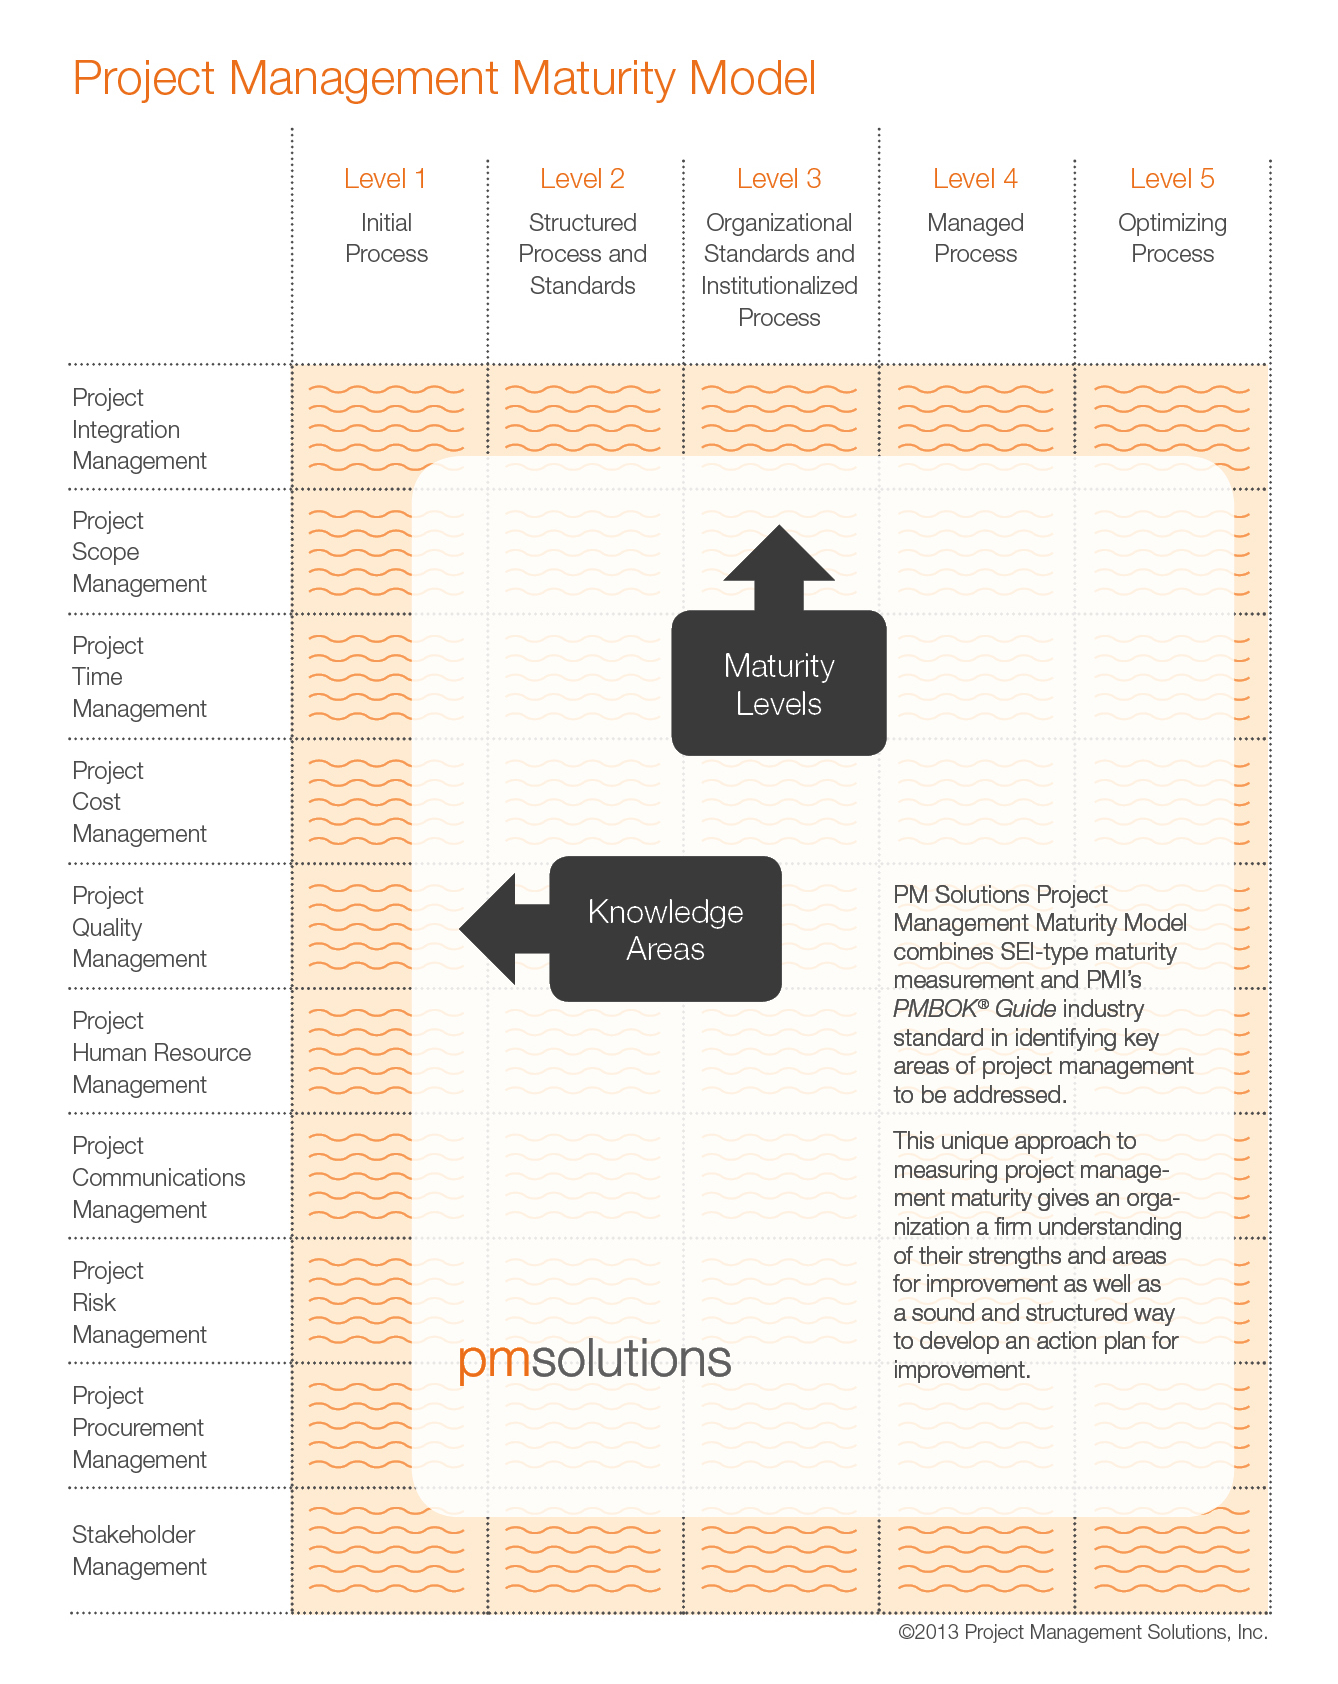 What is the Project Management Maturity Model (PMMM)? | PM Solutions